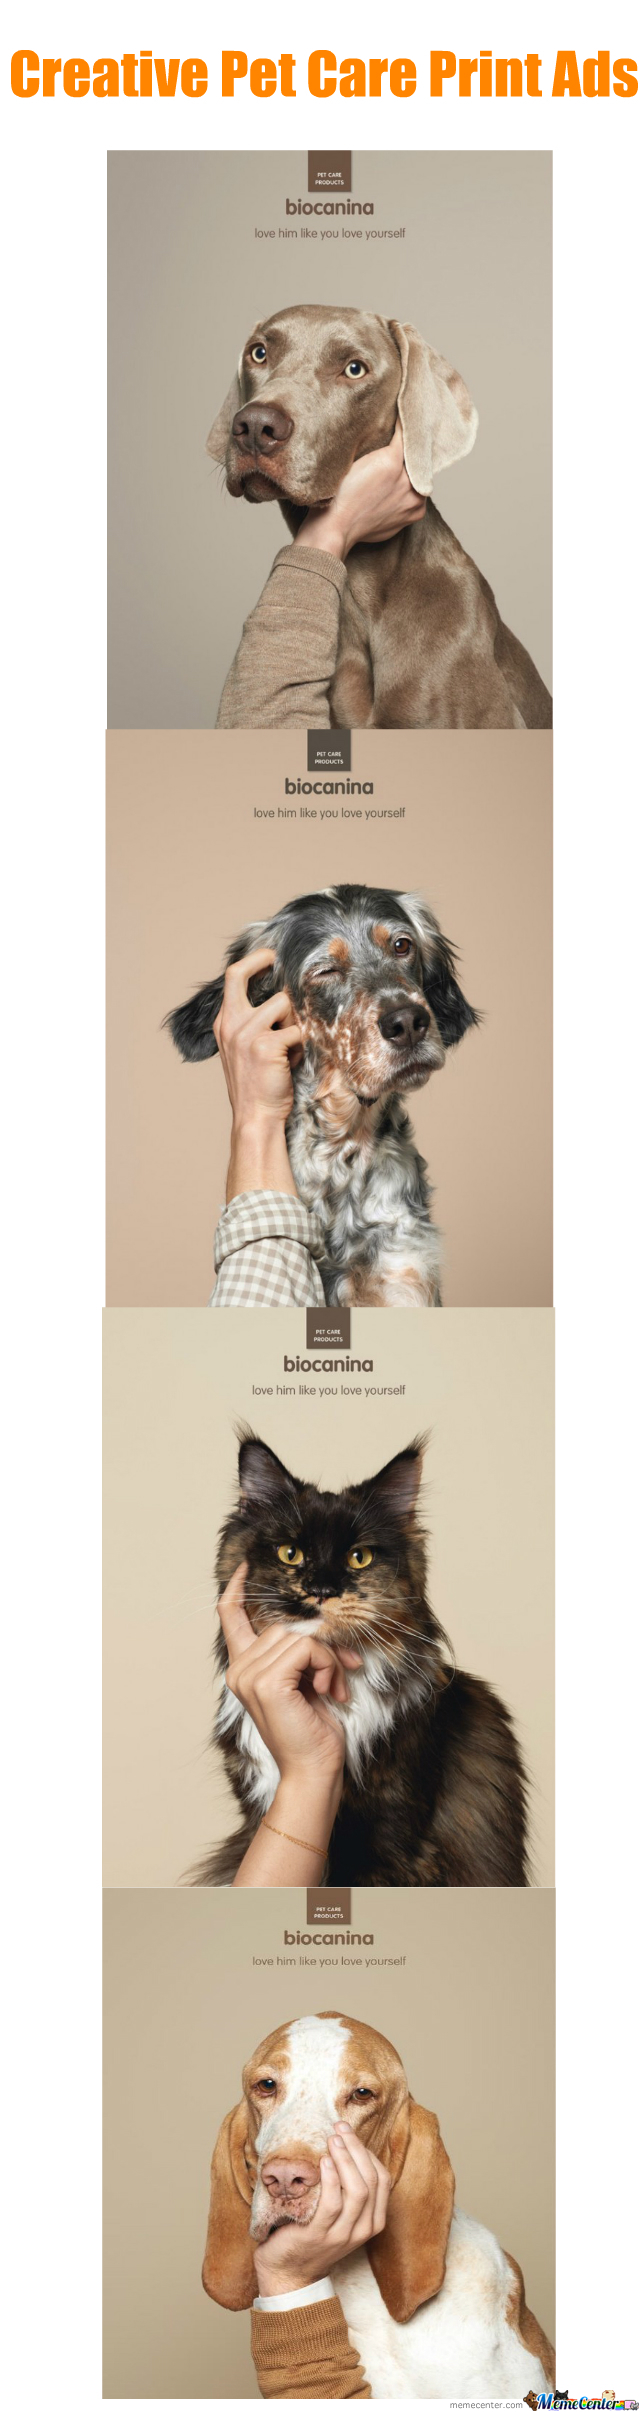 Pet Care Ads